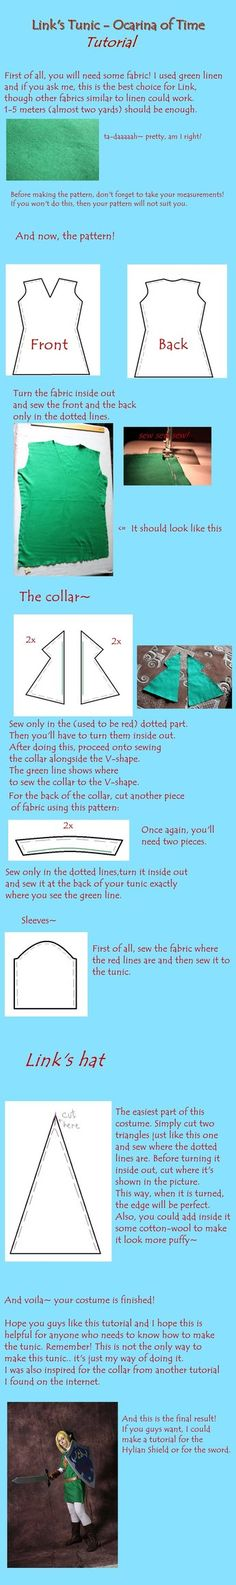 Link tunic tutorial - Ocarina of Time by winged--icarus.deviantart.com on…                                                                                                                                                                                 Más